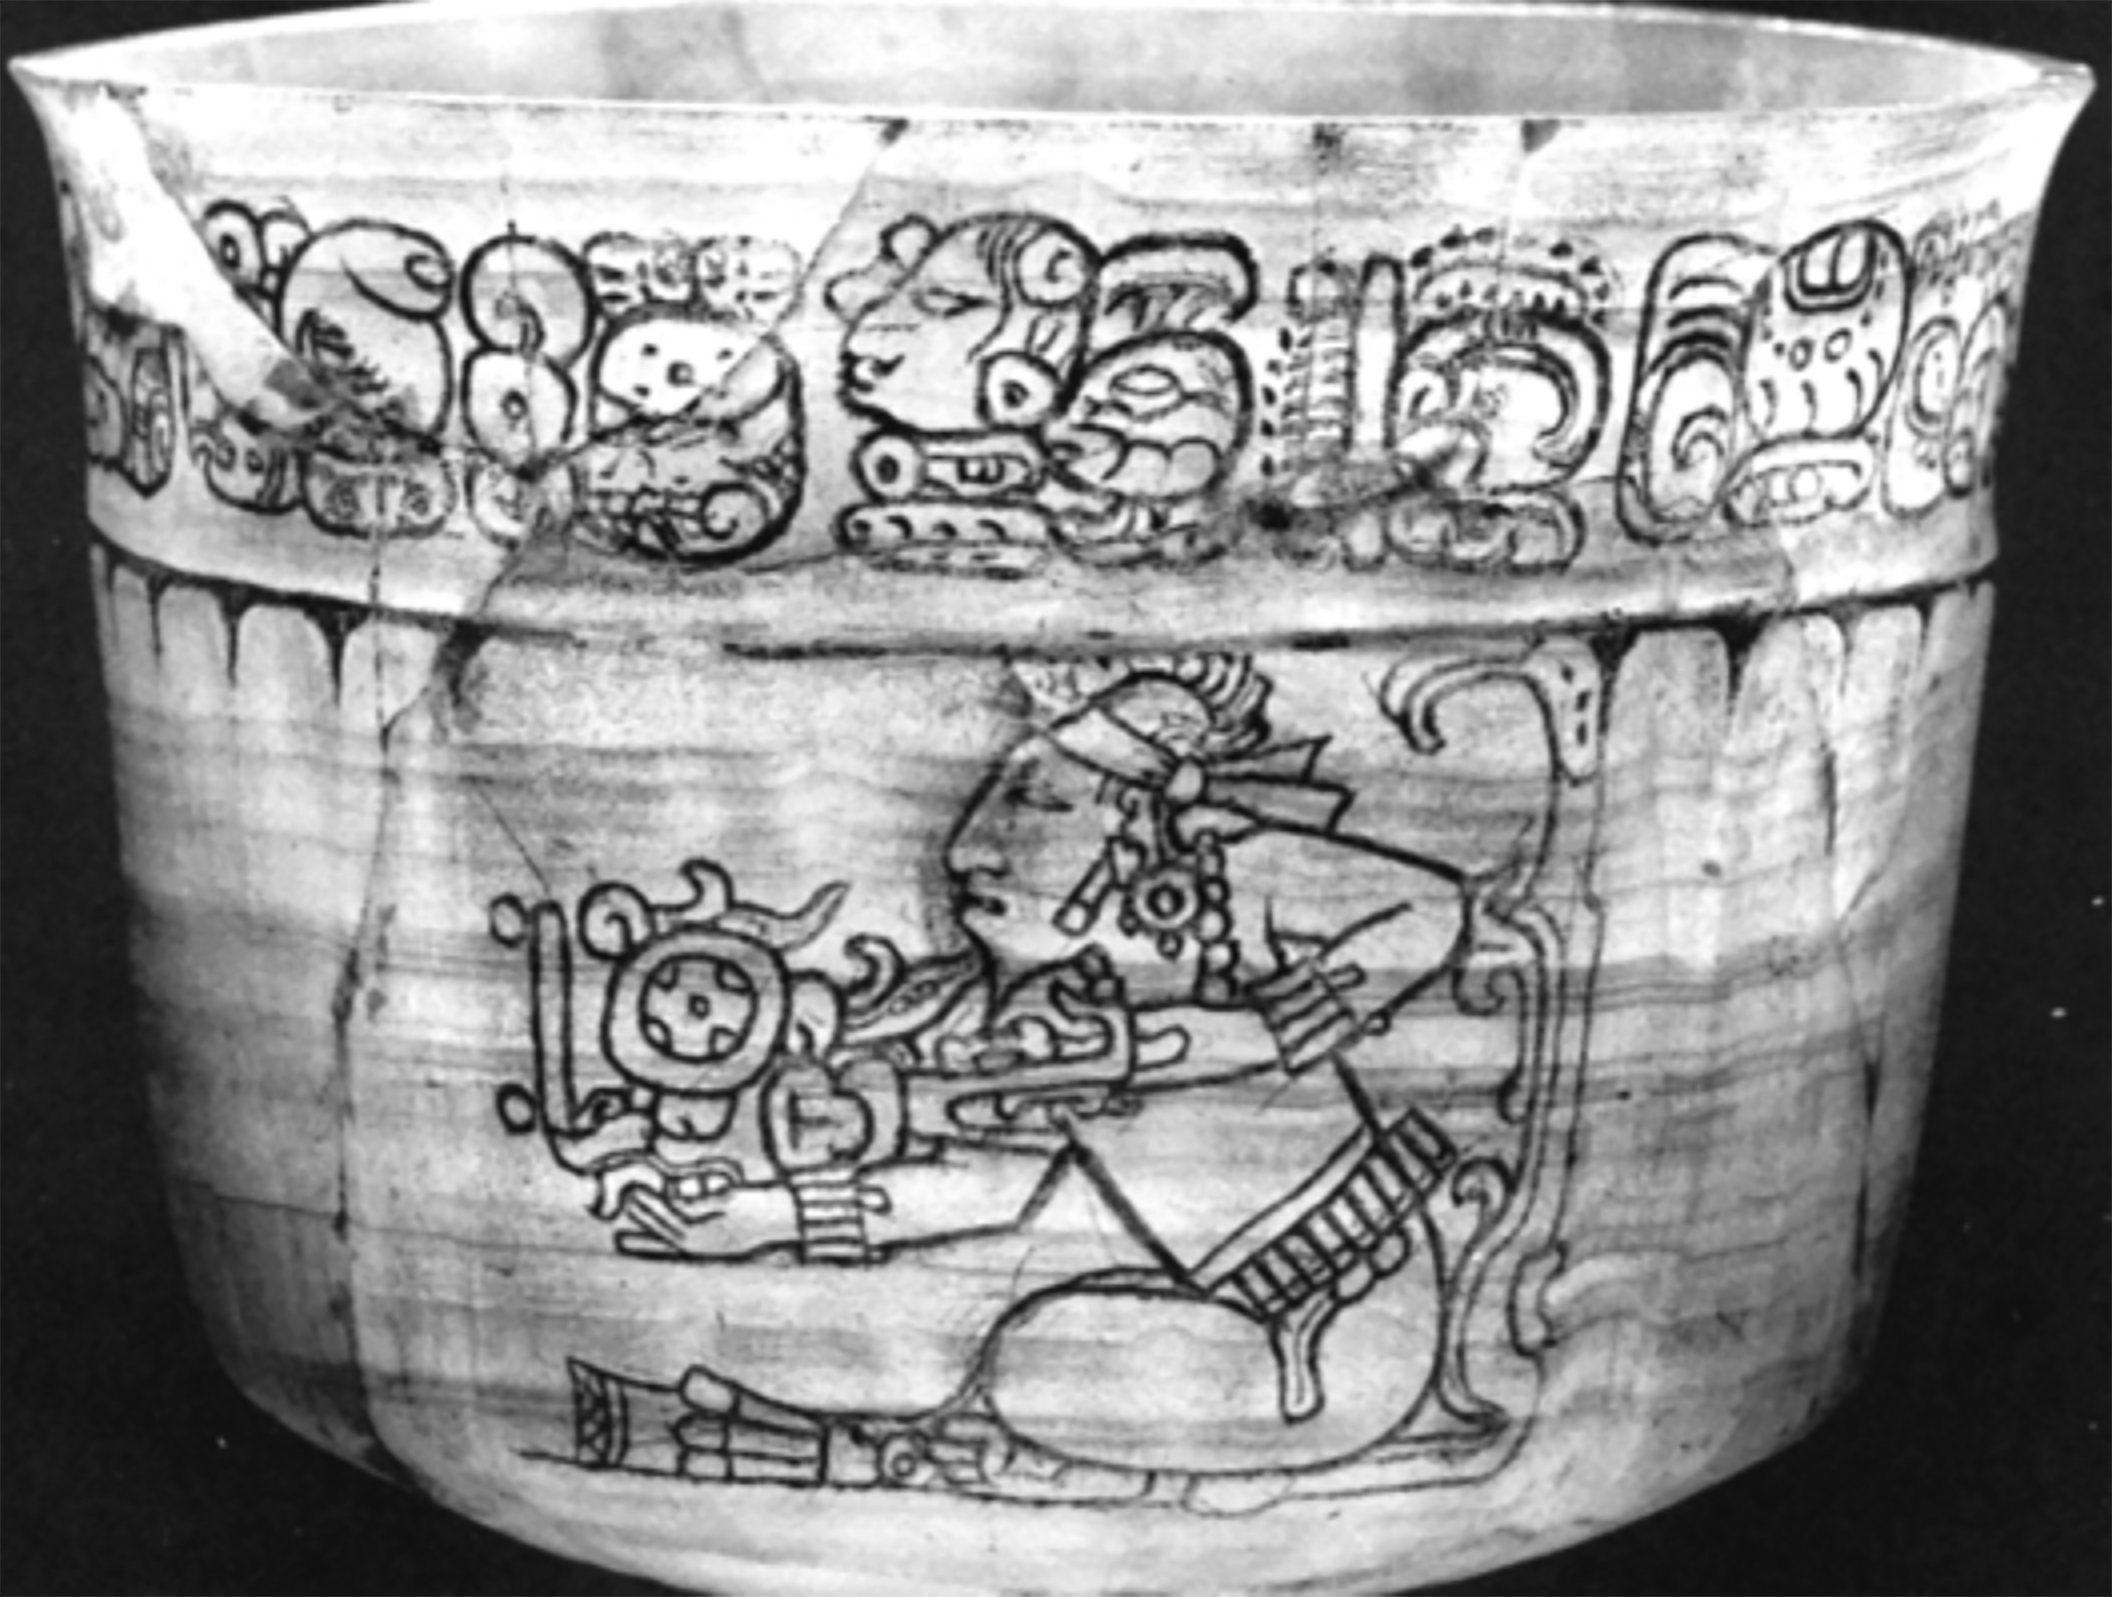 Source: Image of the bowl of Dumbarton Oaks, taken from Sesheña 2007.